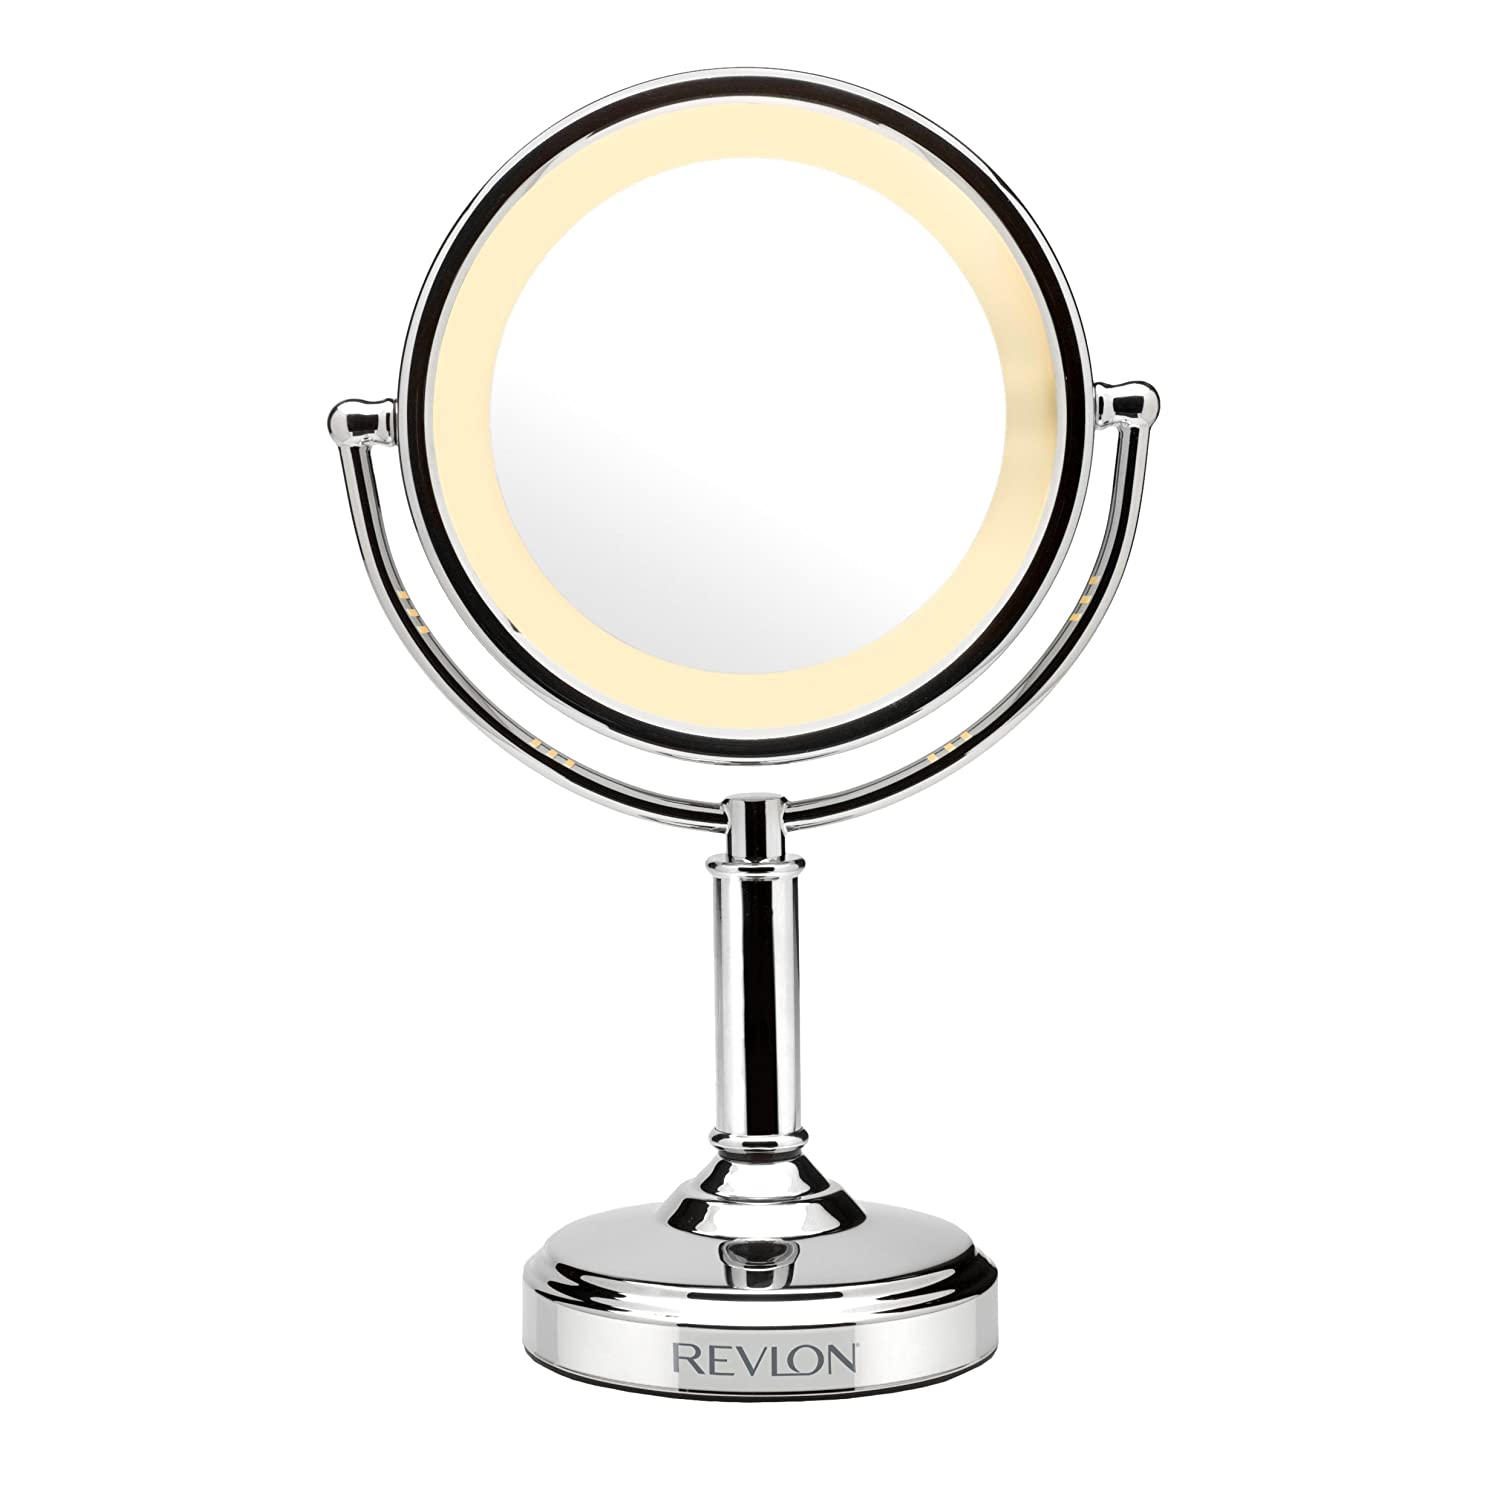 Revlon Make Up Mirror Double Sided Light Up Touch Control